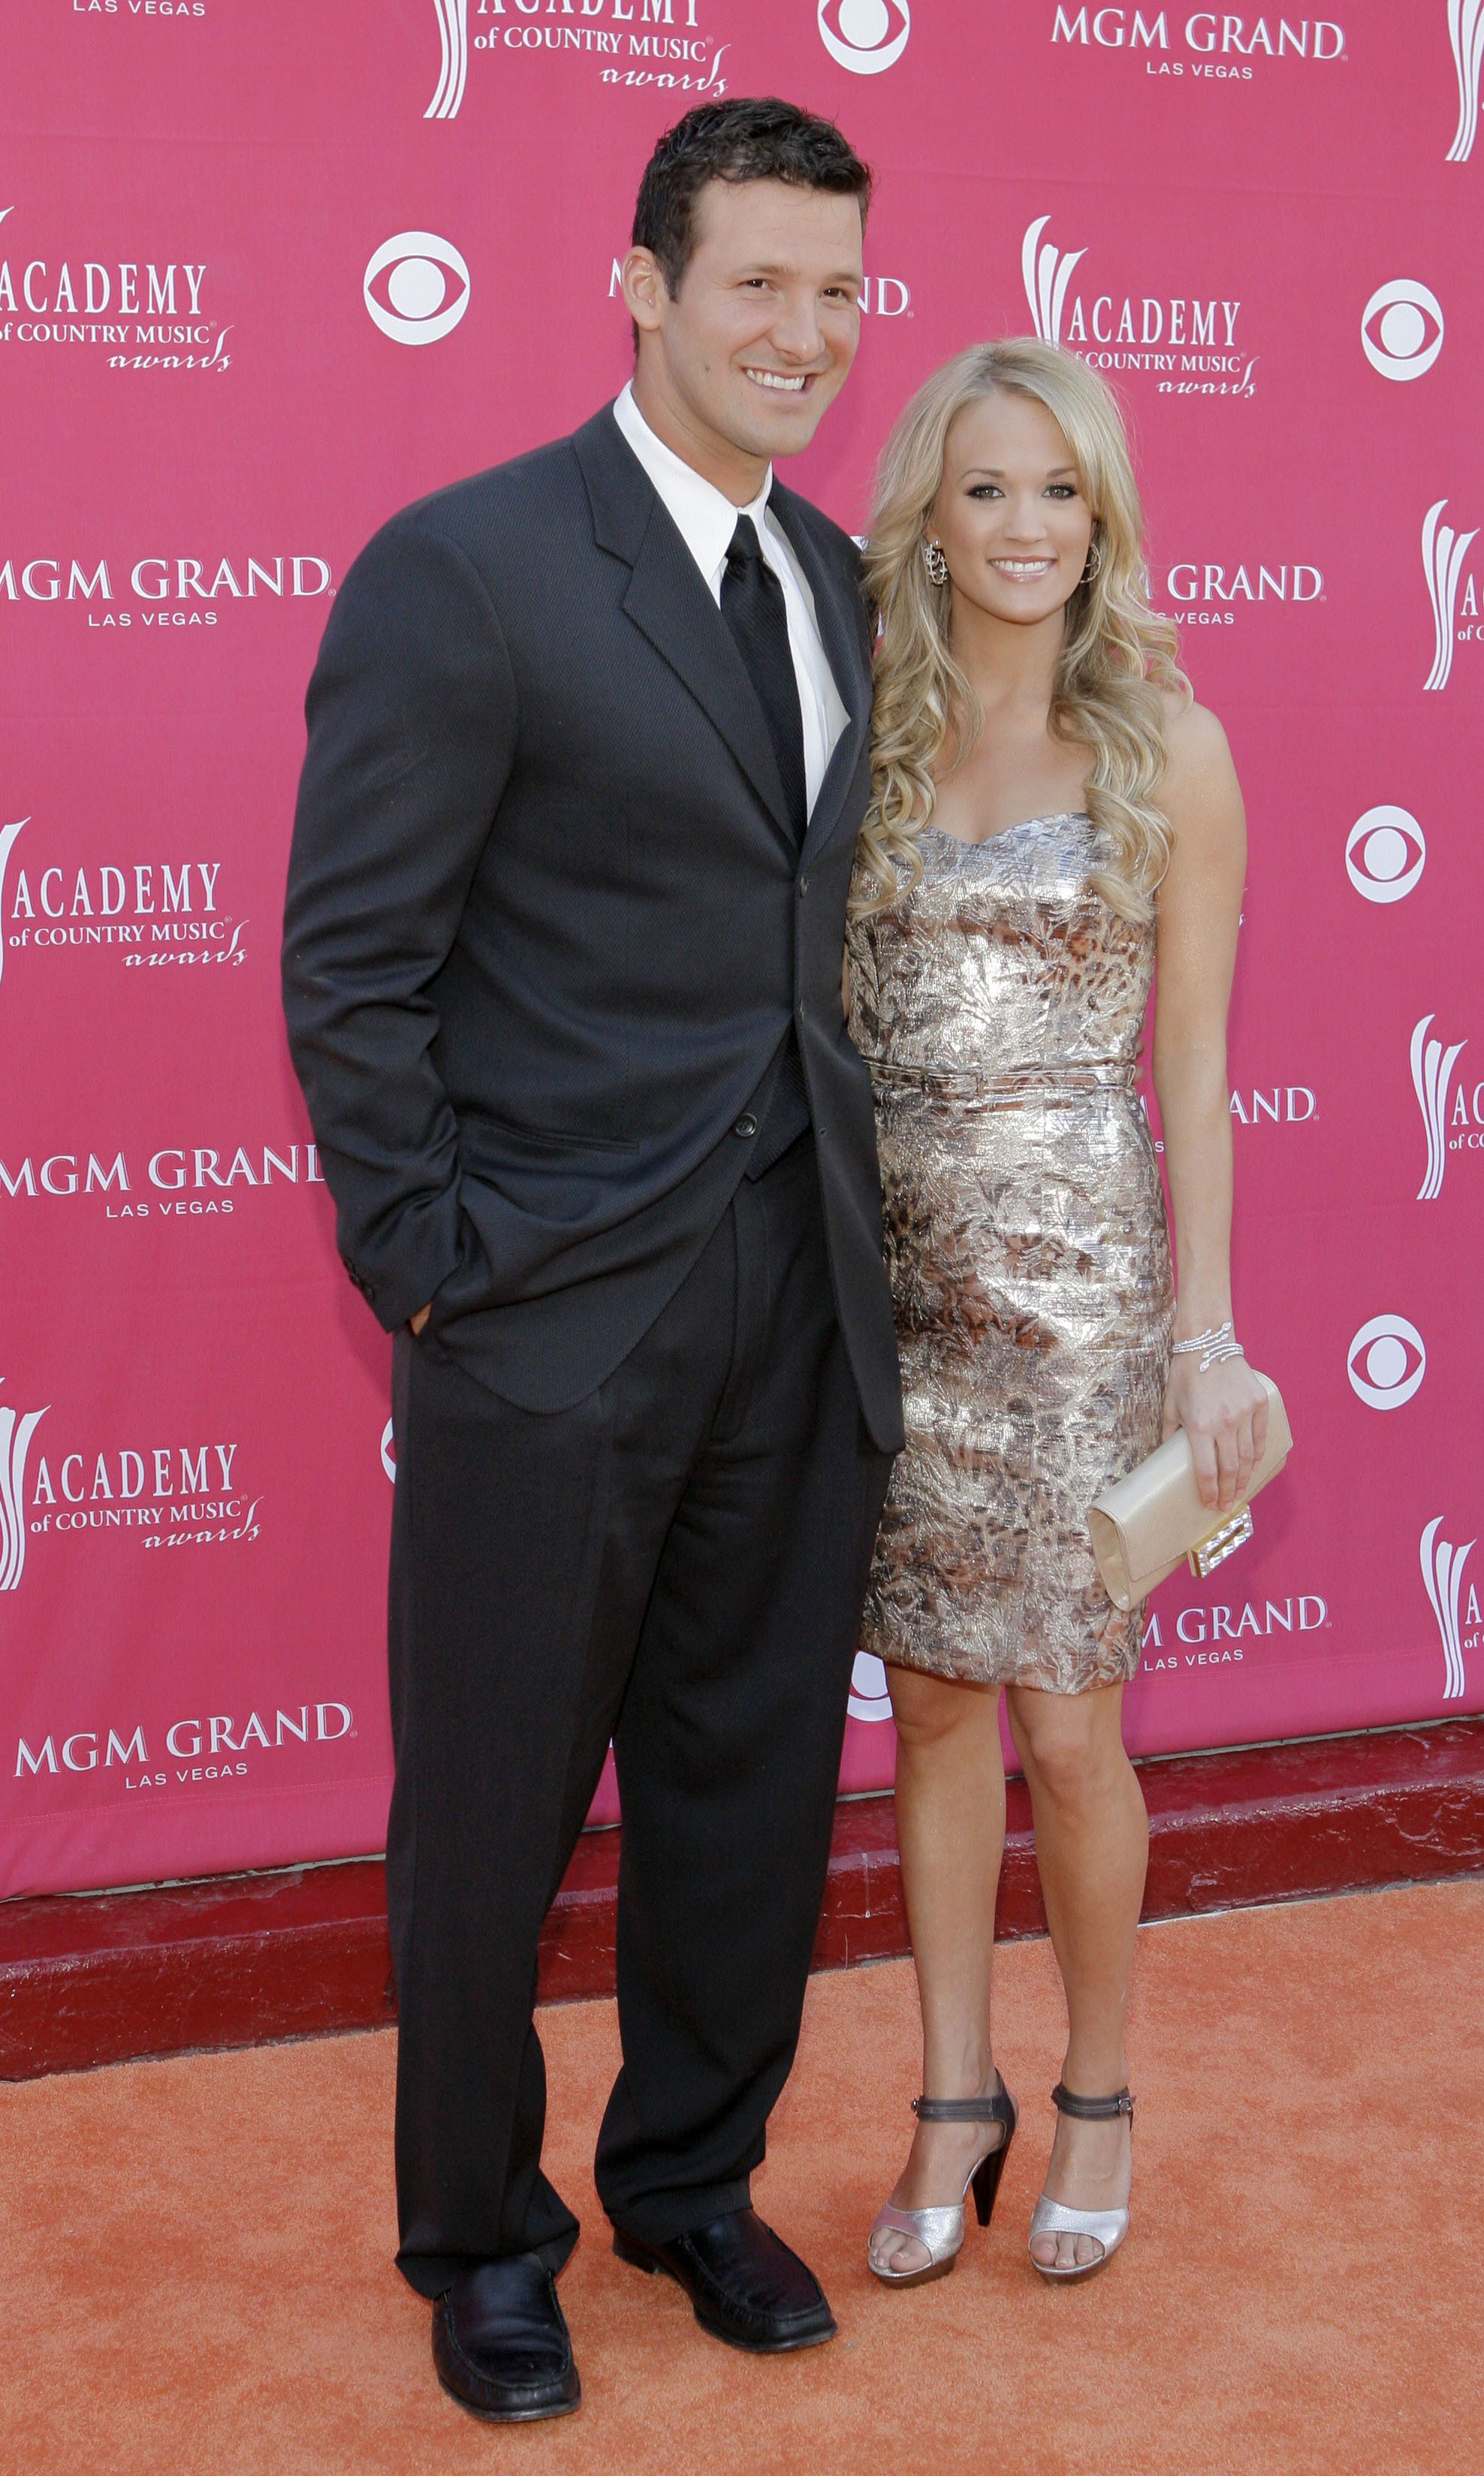 Tony Romo and Carrie Underwood